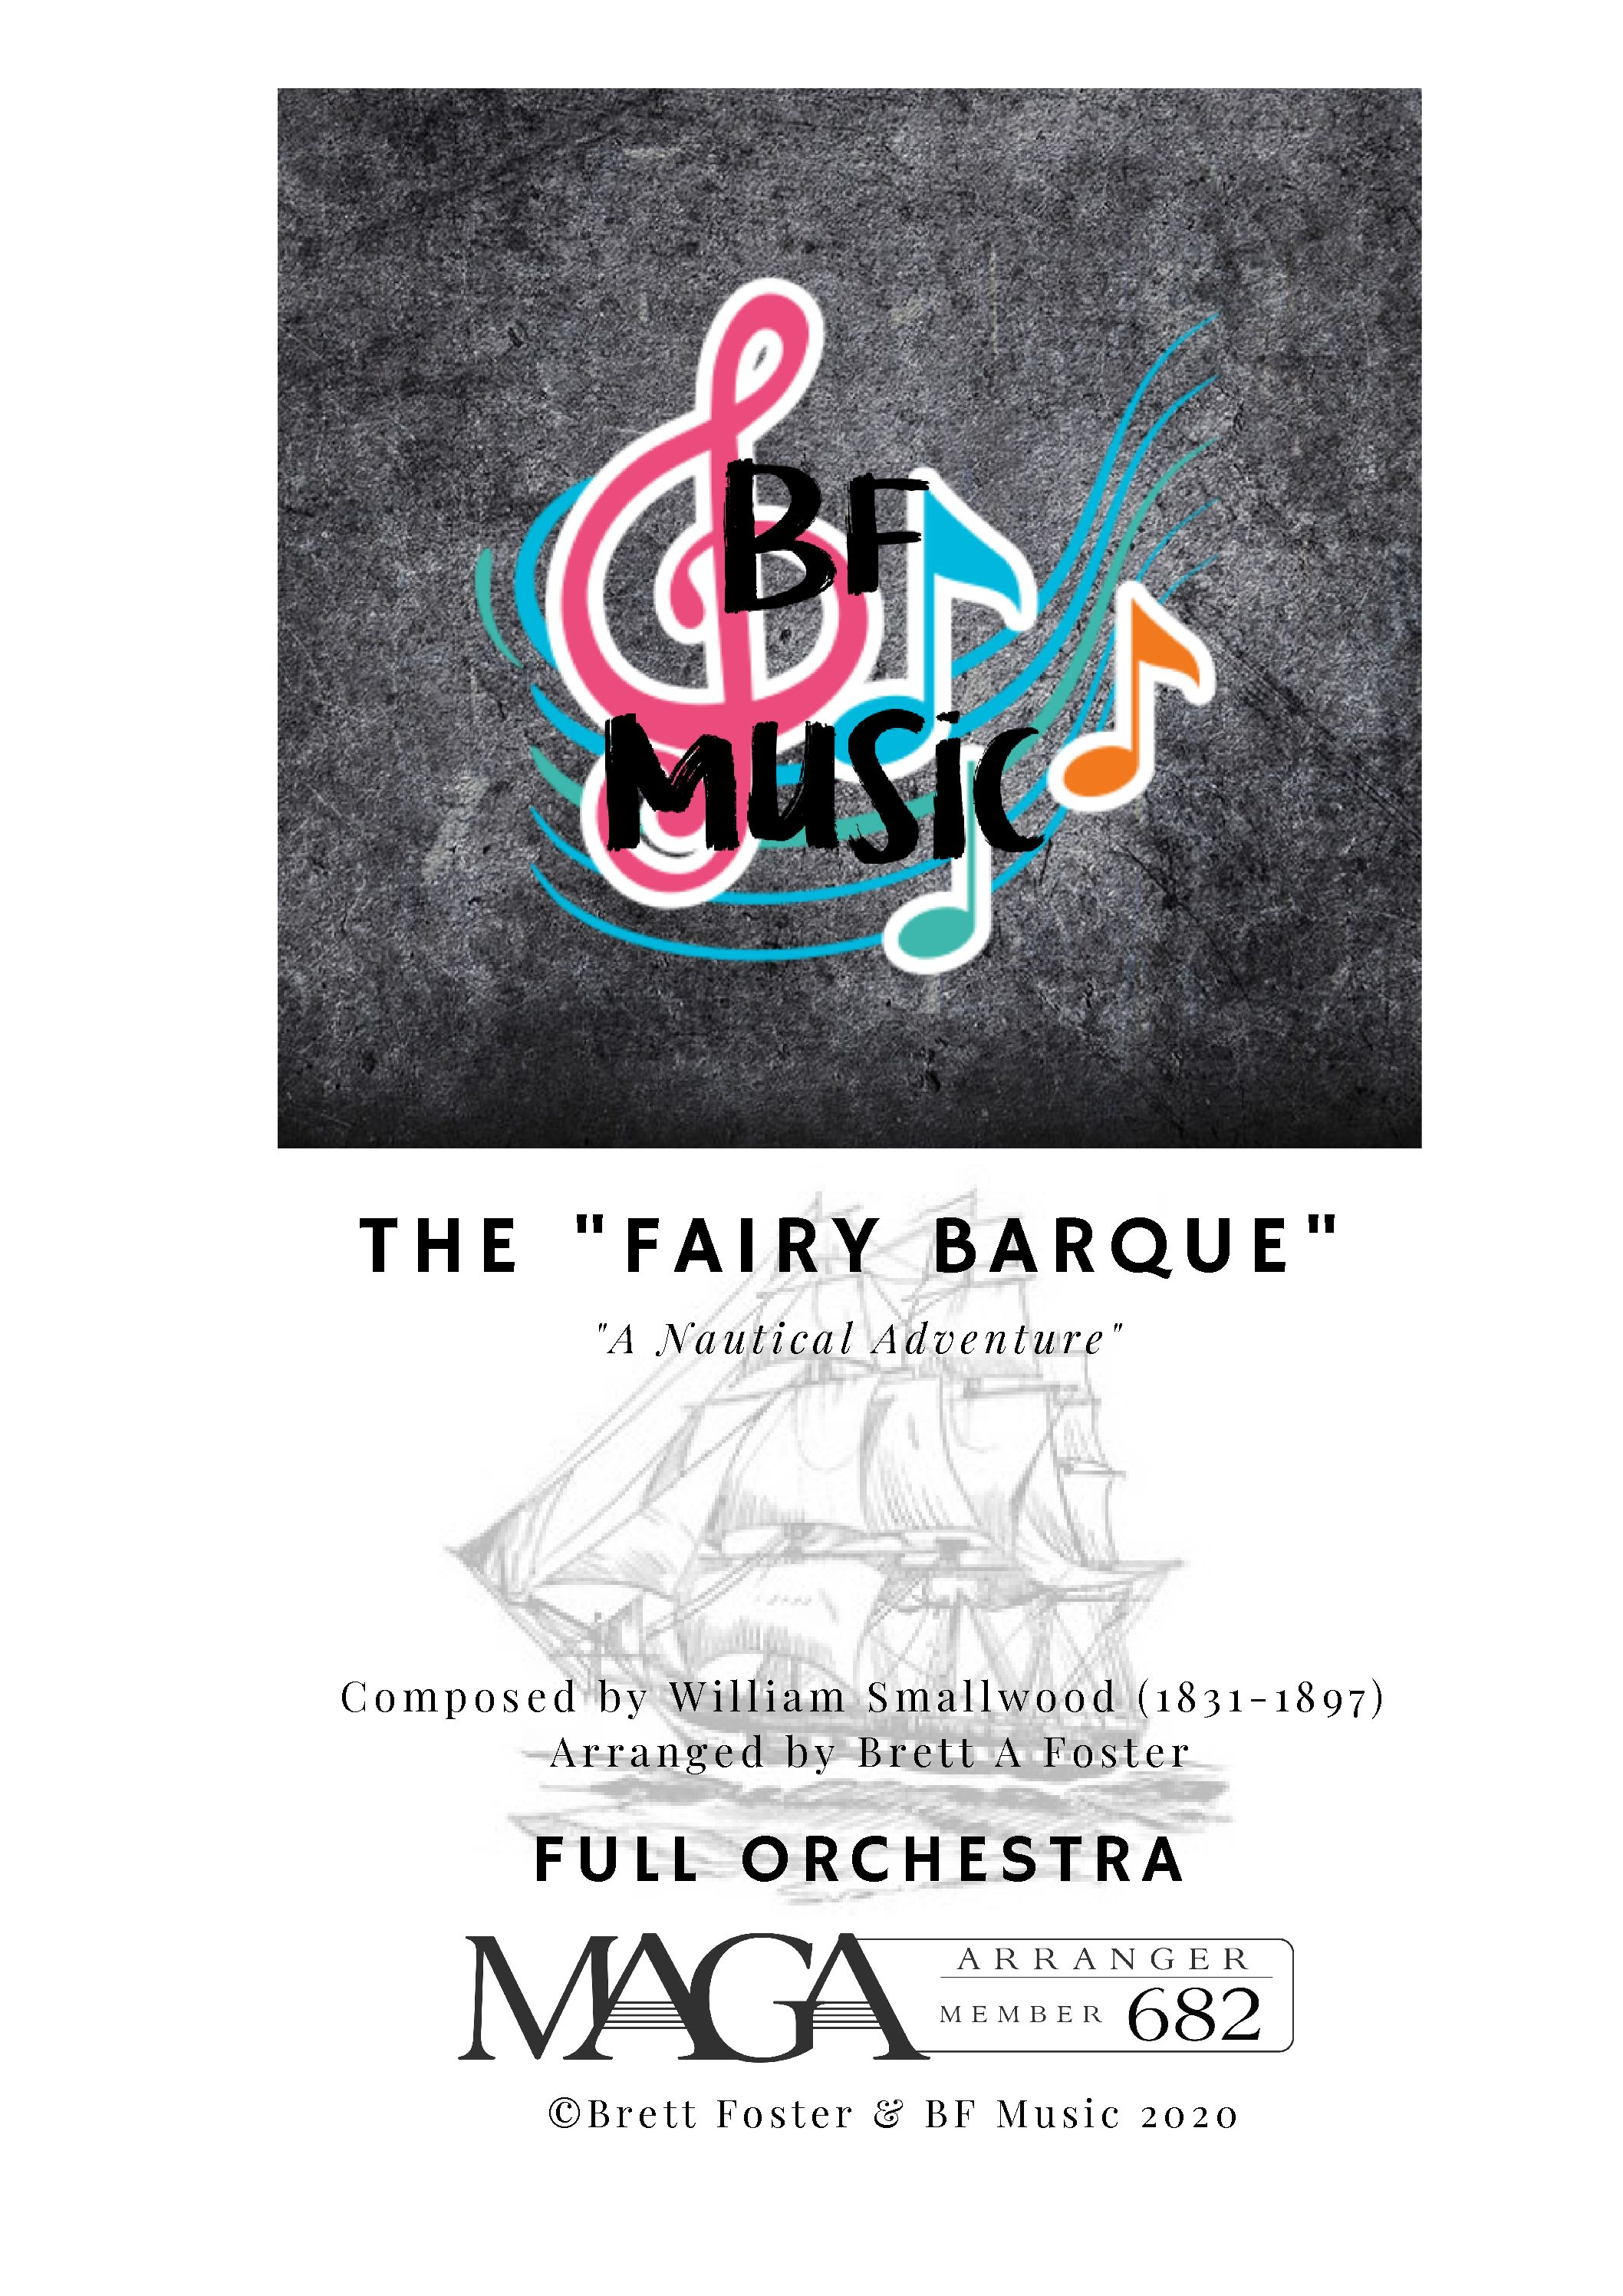 The Fairy Barque for Orchestra by William Smallwood